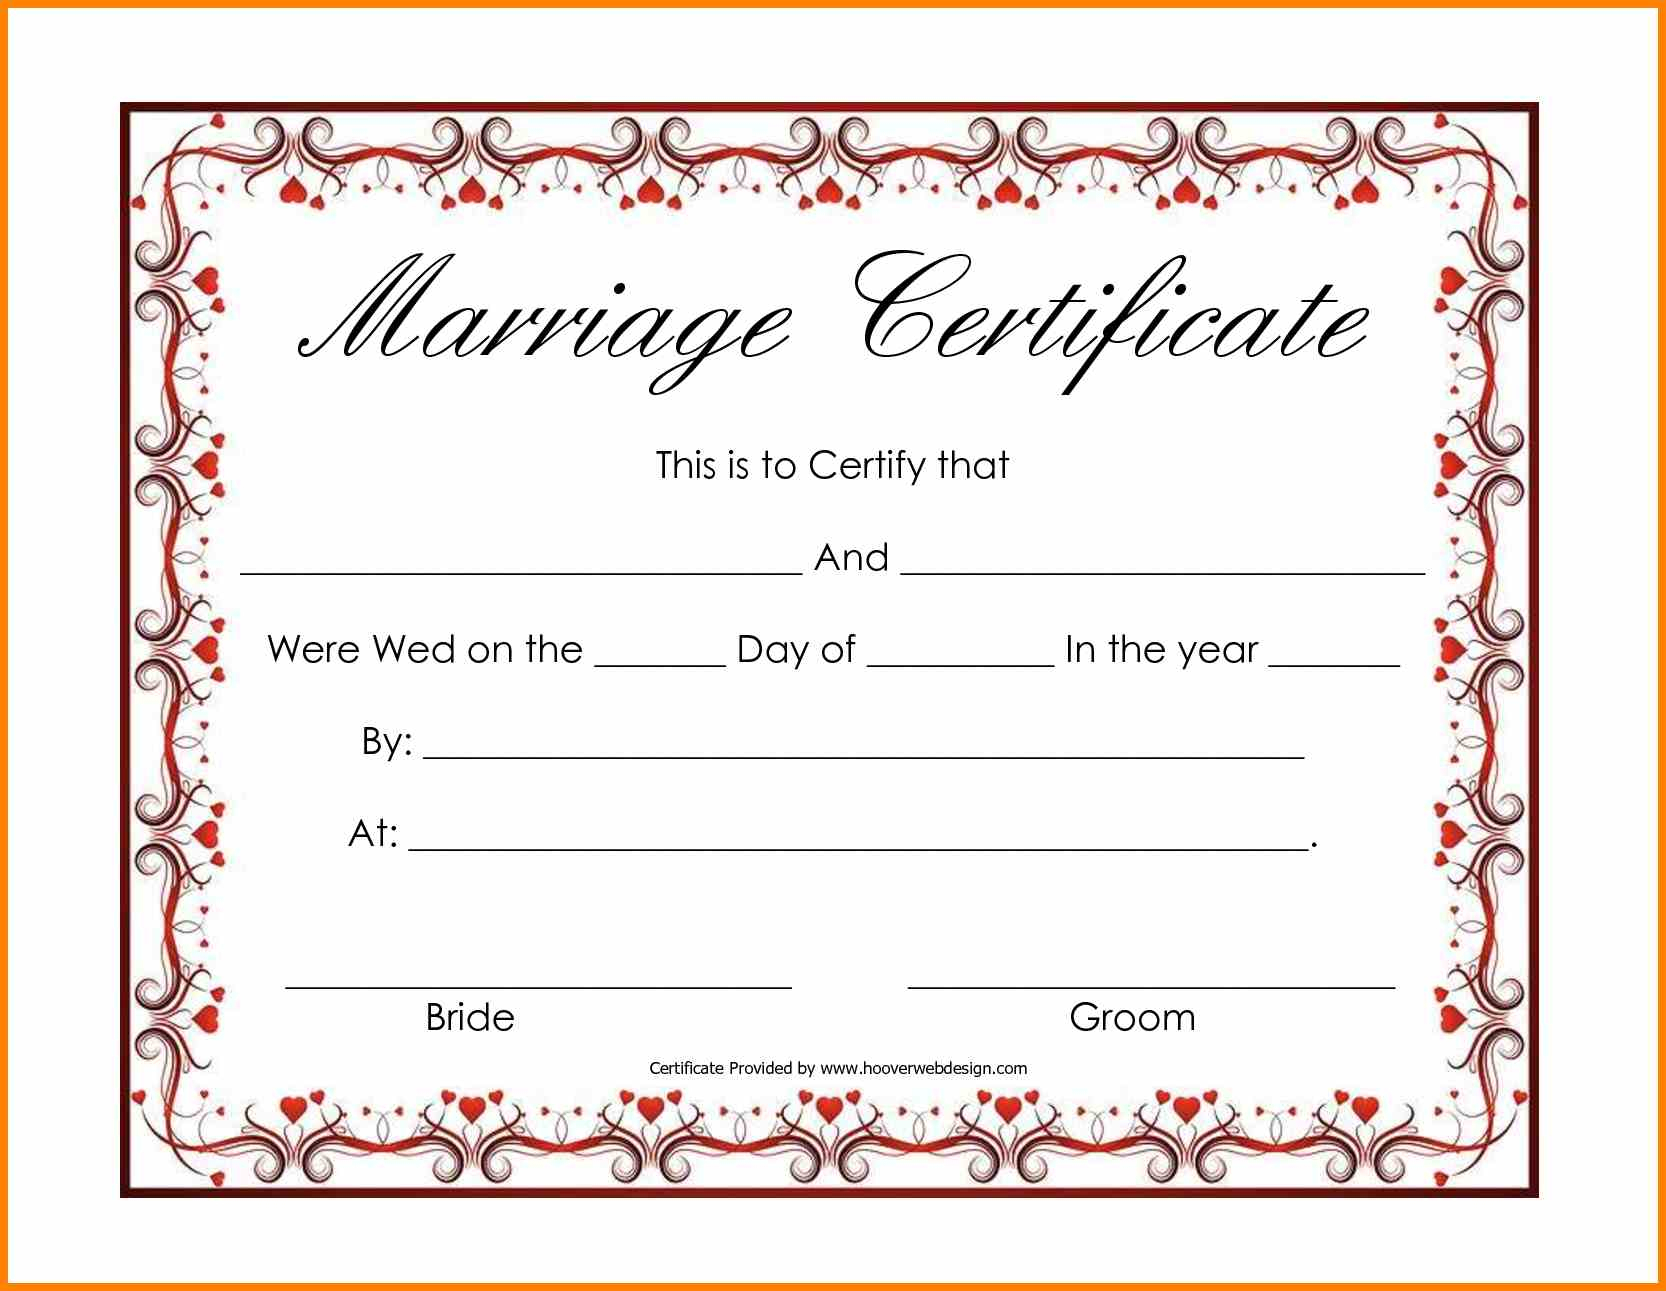 10+ Fake Marriage Certificate Printable | Lbl Home Defense Products - Fake Marriage Certificate Printable Free